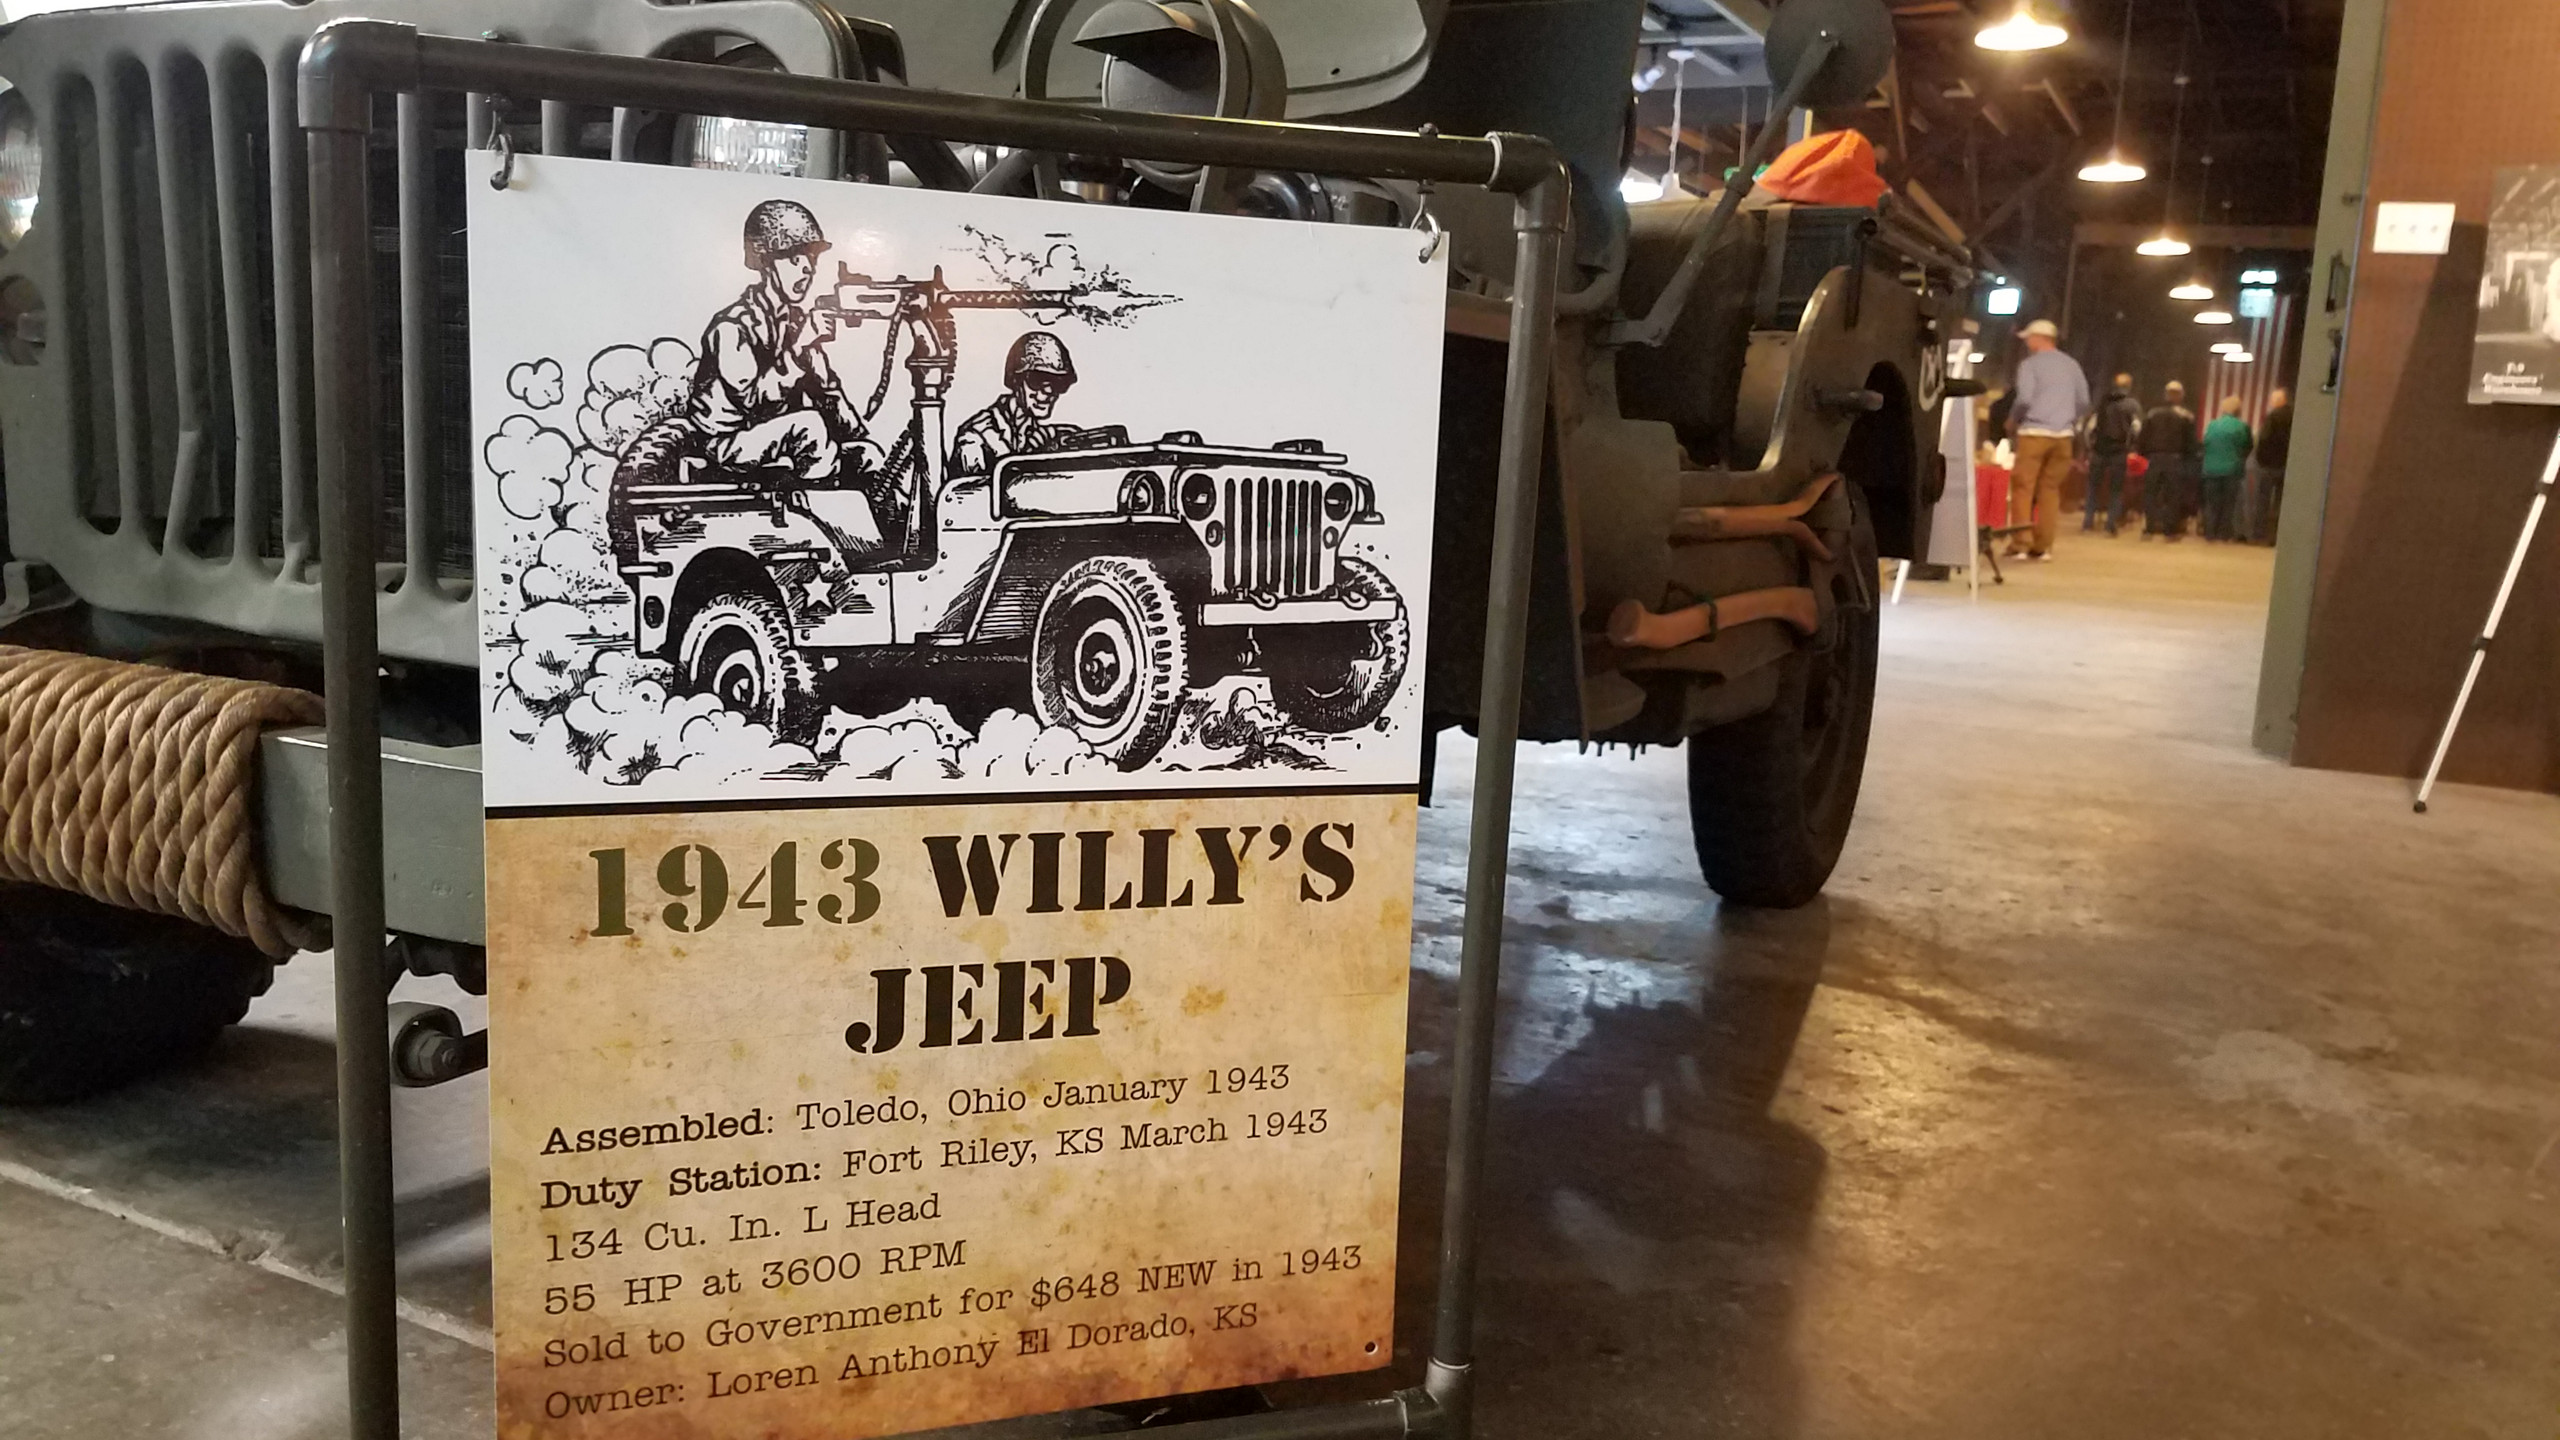 1943 Willy's Jeep